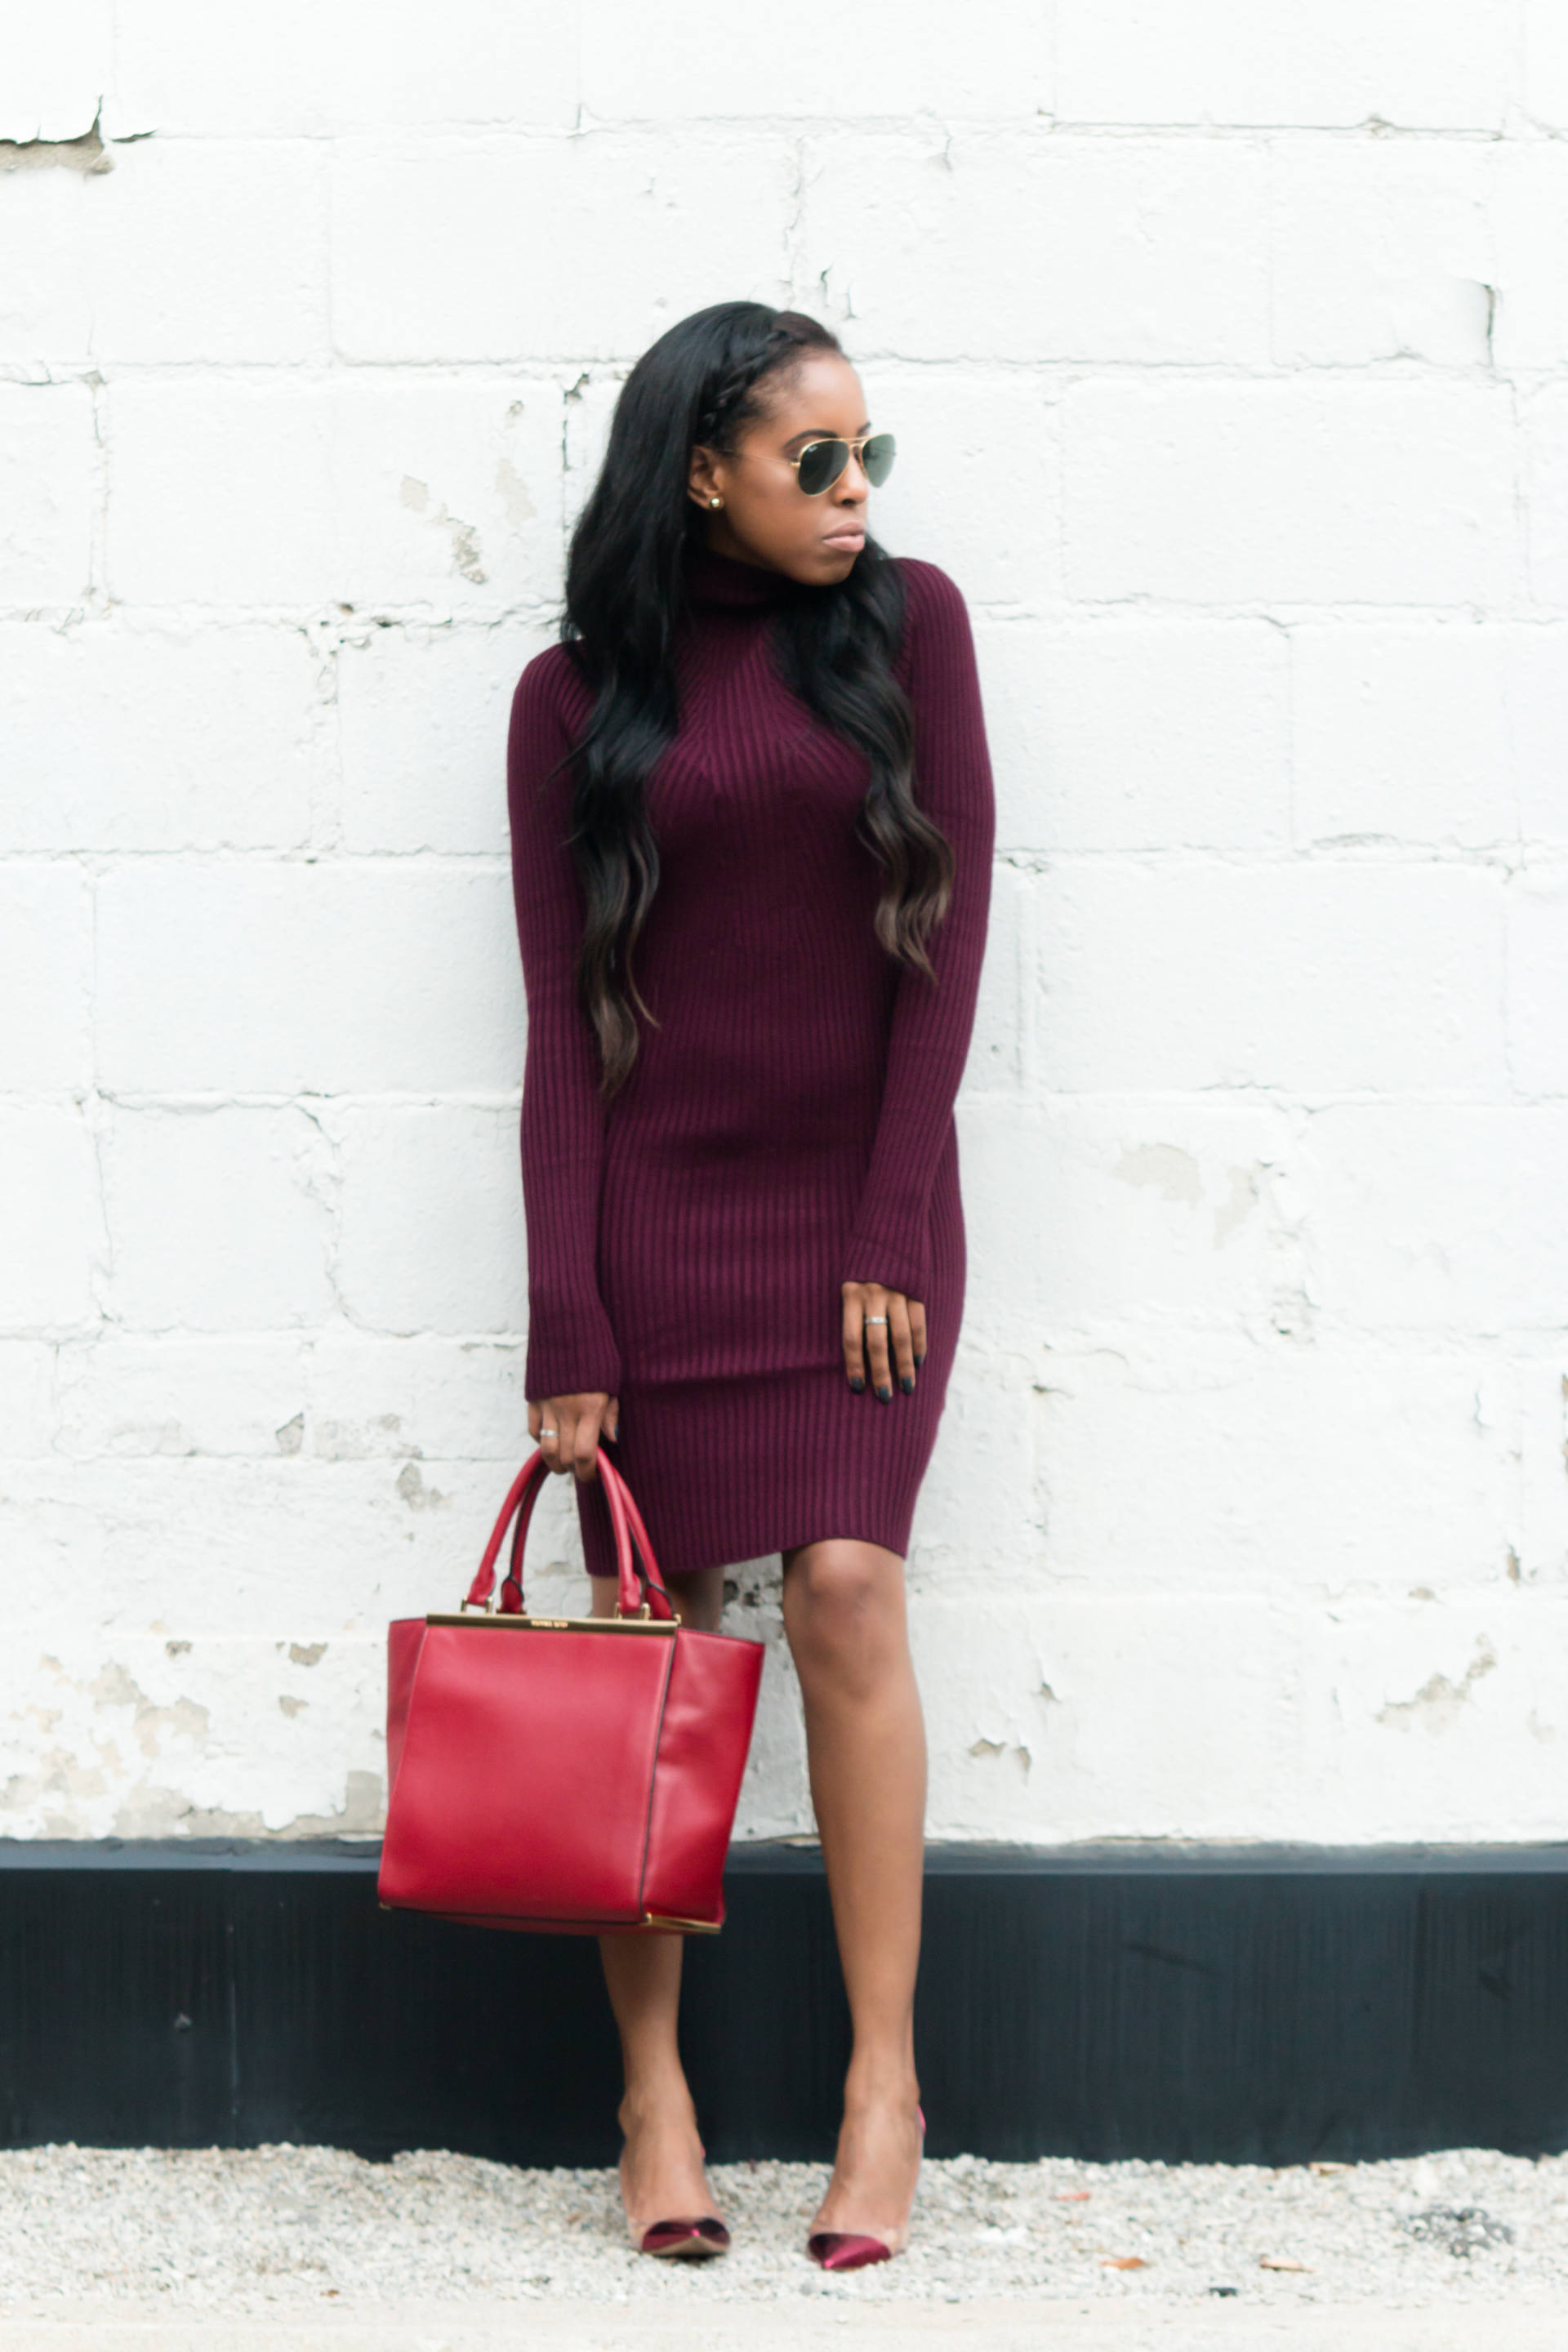 oxblood sweater dress